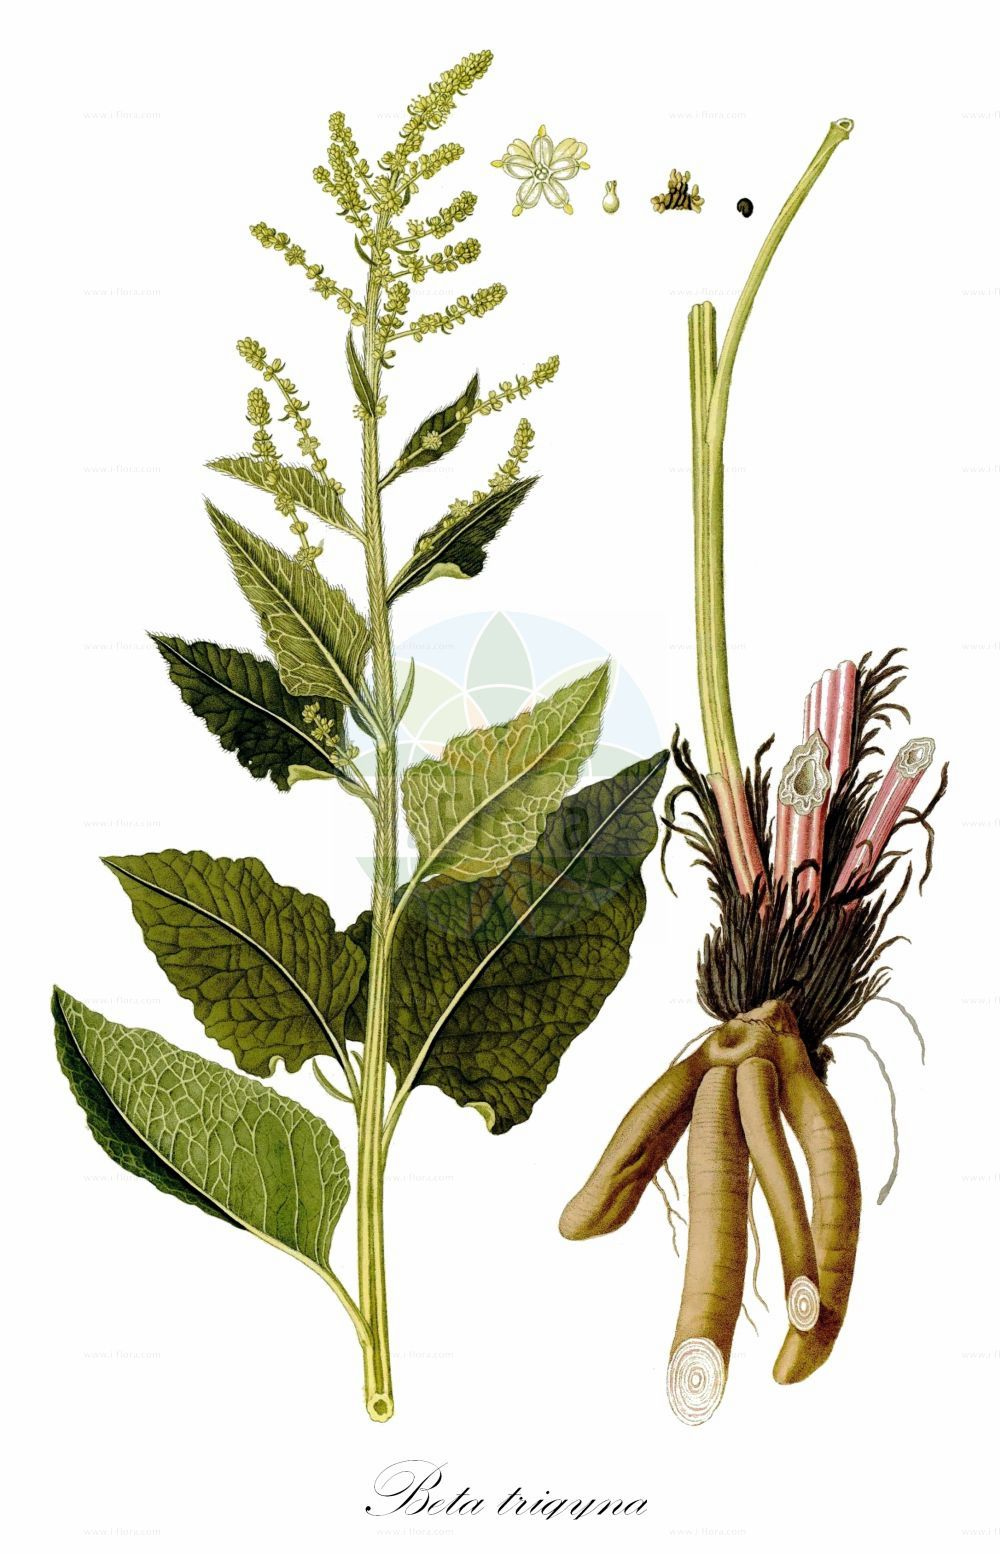 Historische Abbildung von Beta trigyna. Das Bild zeigt Blatt, Bluete, Frucht und Same. ---- Historical Drawing of Beta trigyna.The image is showing leaf, flower, fruit and seed.(Beta trigyna,Beta hybrida,Beta intermedia,,Beta,Ruebe,Beet,Amaranthaceae,Fuchsschwanzgewaechse,Pigweed family,Blatt,Bluete,Frucht,Same,leaf,flower,fruit,seed,Waldstein-Wartenberg & Kitaibel (1799-1812))